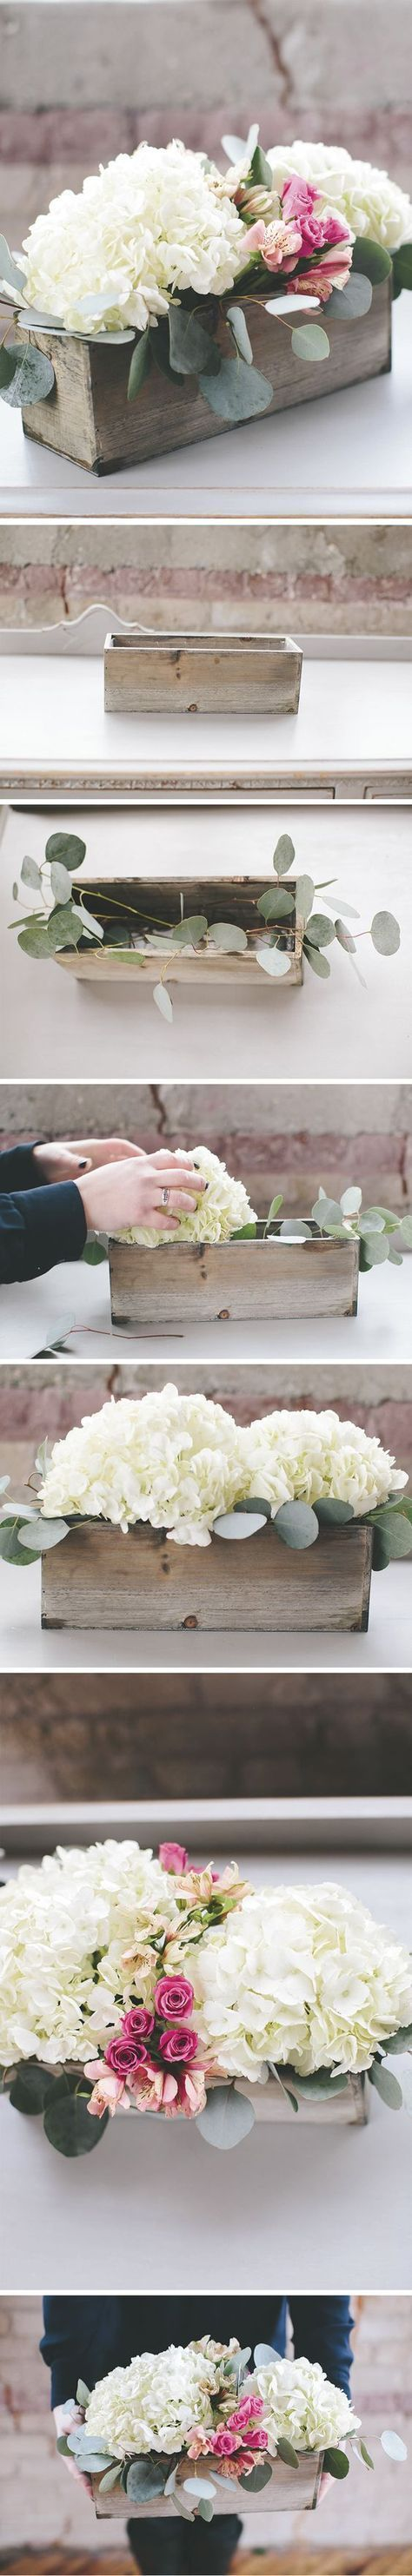 Hydrangea Arrangements Diy : Best ideas about hydrangea wedding centerpieces on